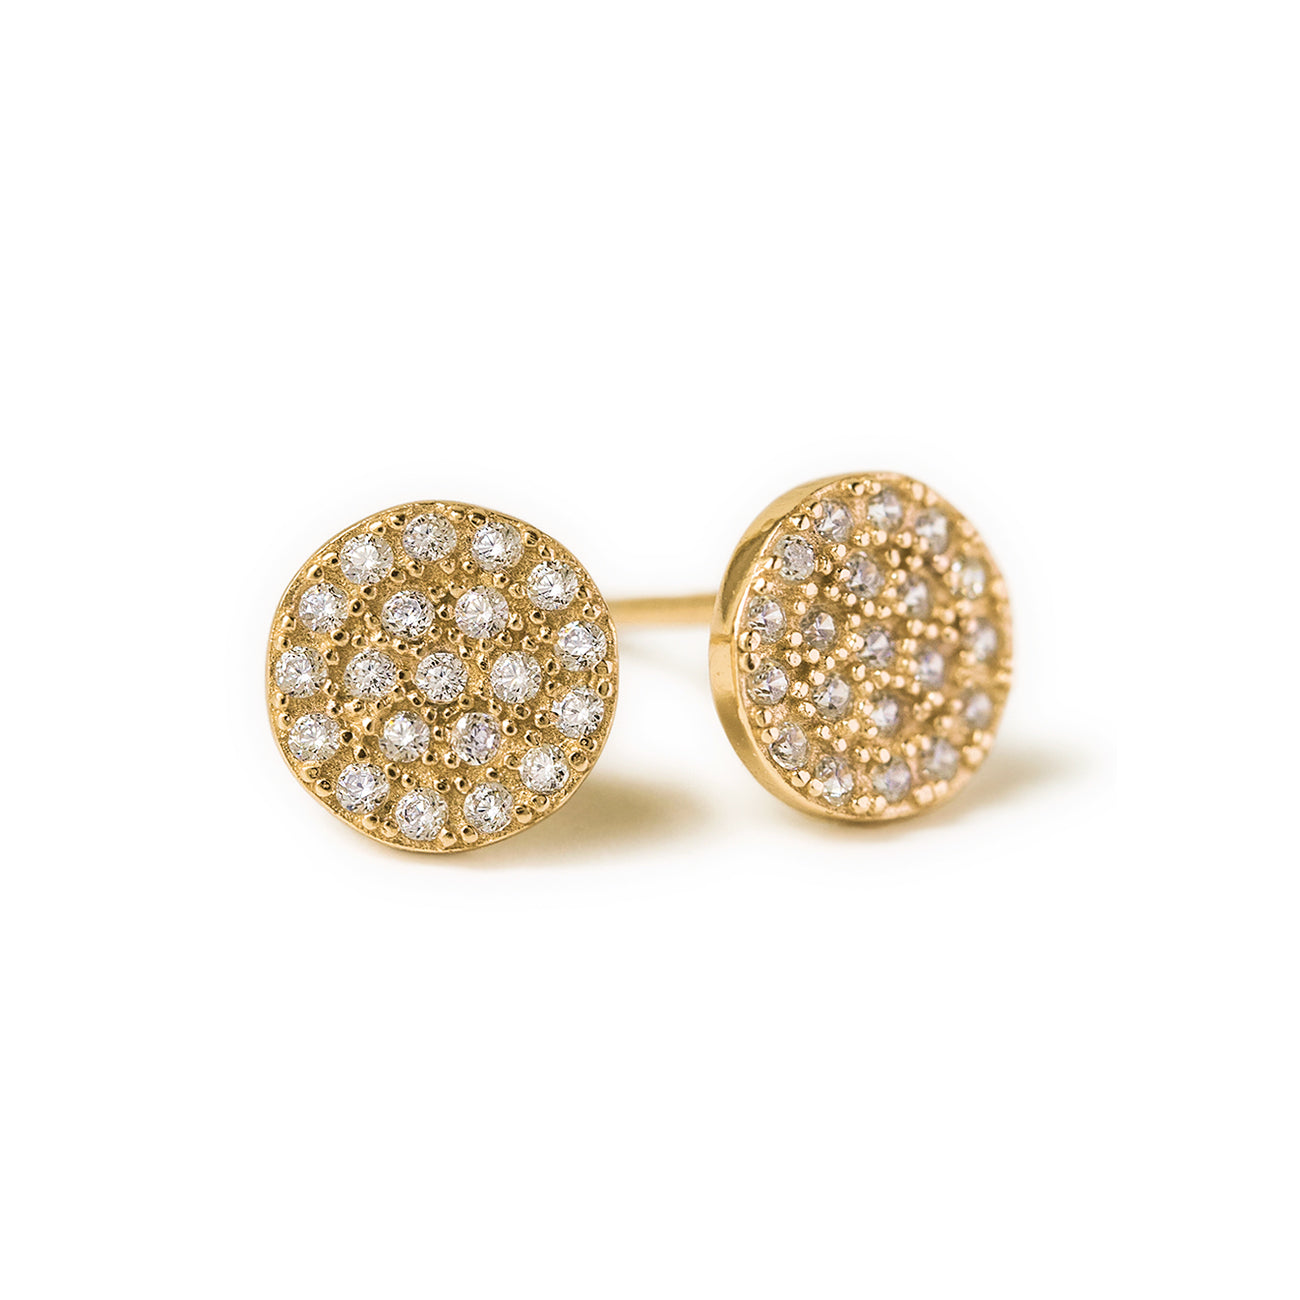 Gold Pave CZ Disc Stud Earrings